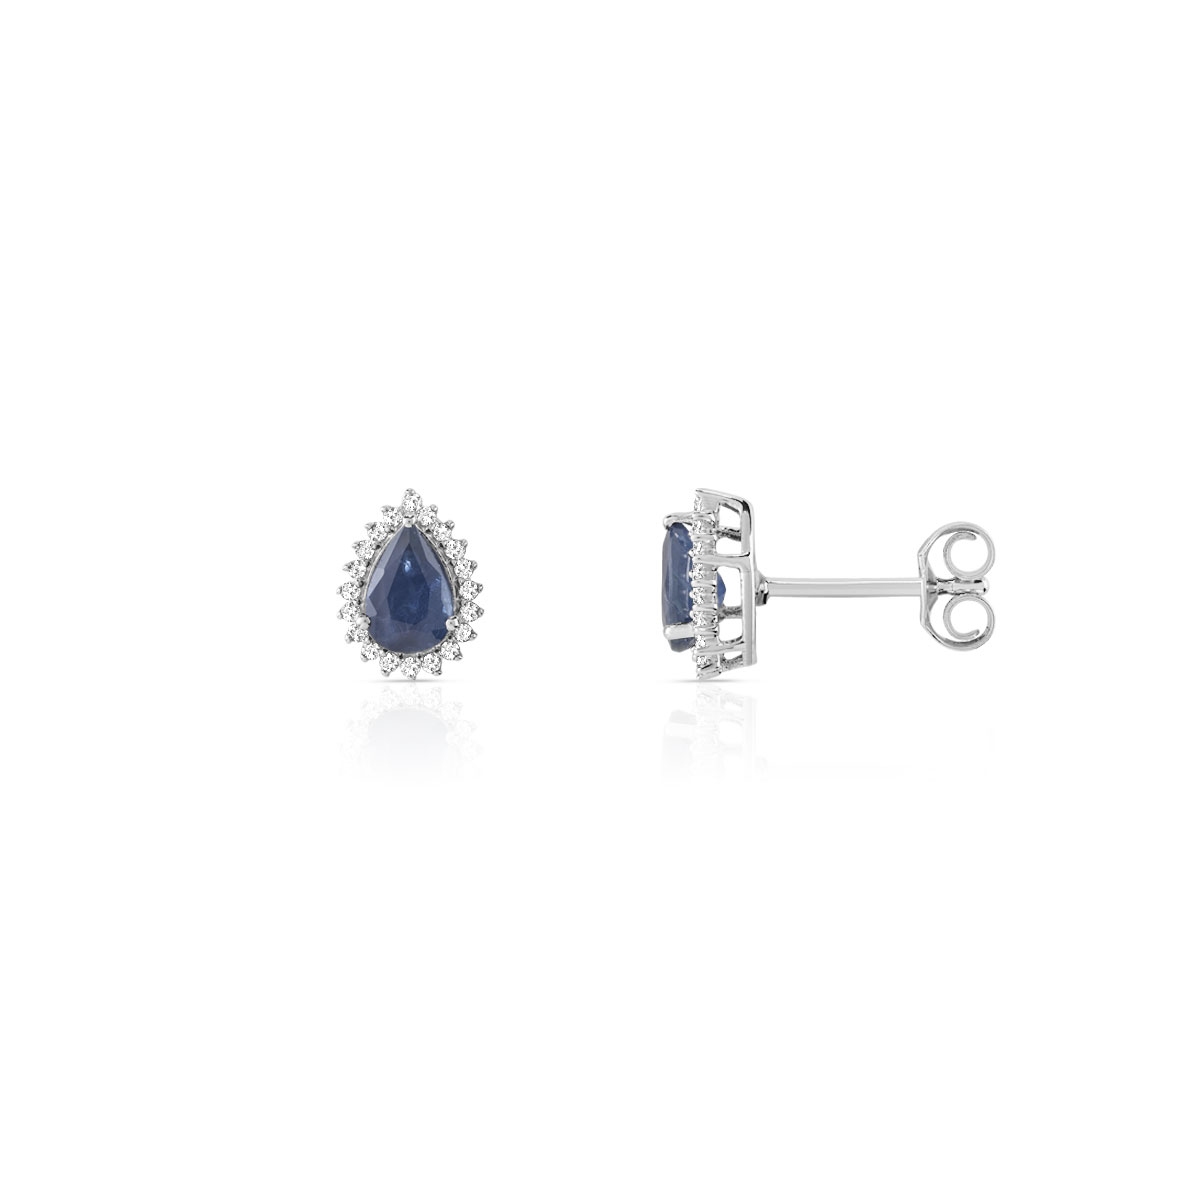 Boucles d'oreilles or blanc saphirs diamants - vue V1